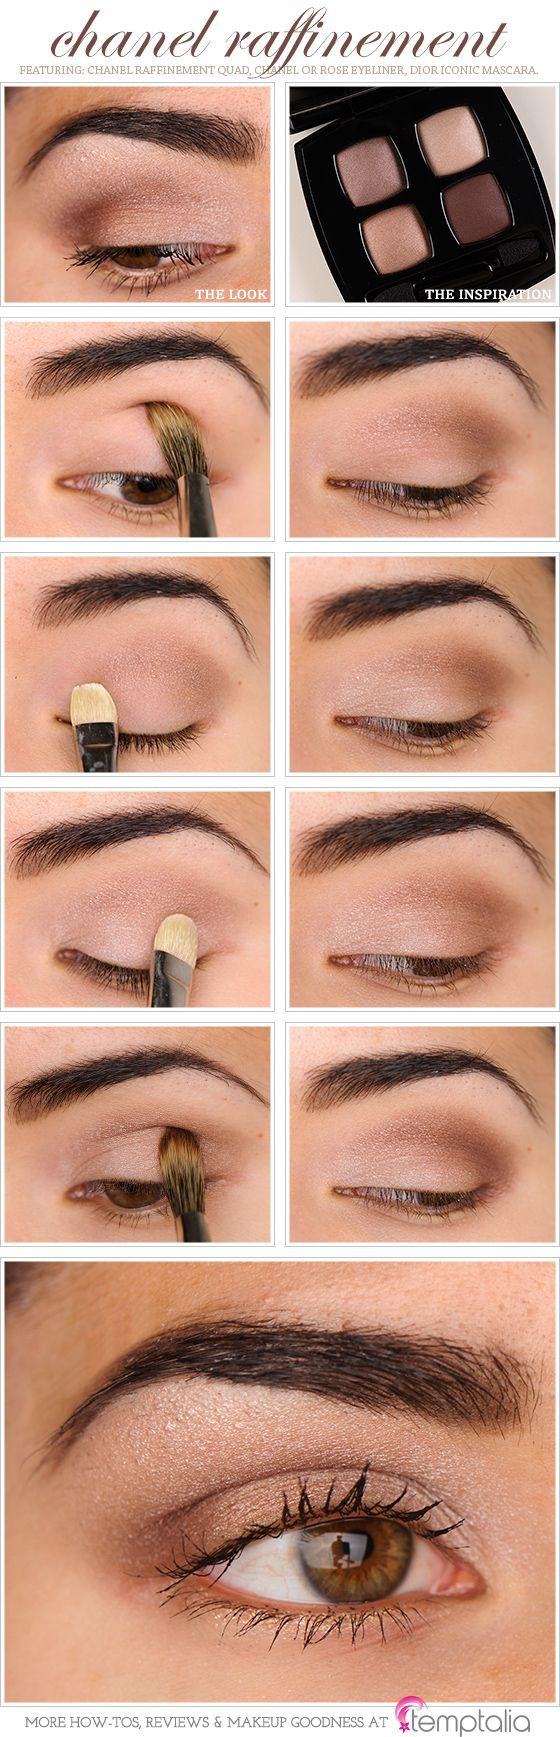 Chanel Raffinement Eyeshadow Quad, I have very close approximations in my UD naked palettes: